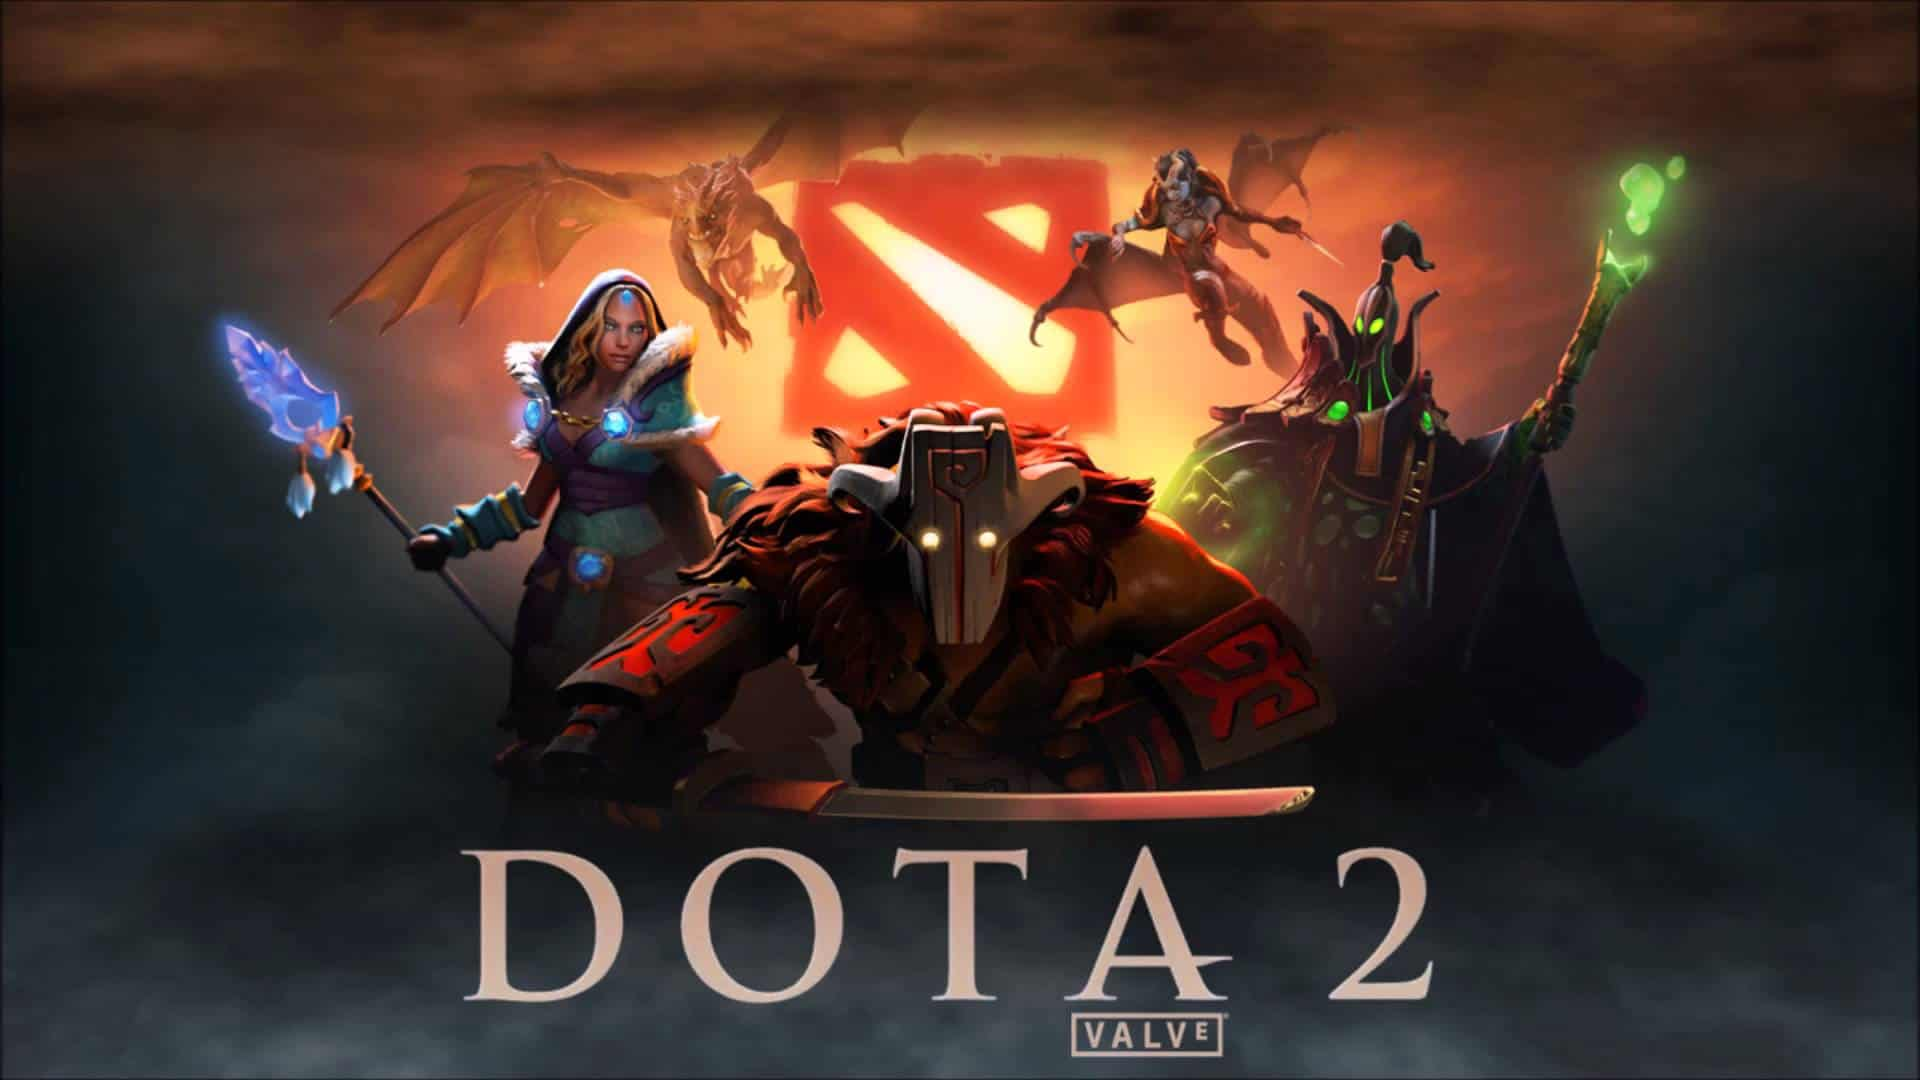 Steam Dota 2 Counter Strike Global Offensive